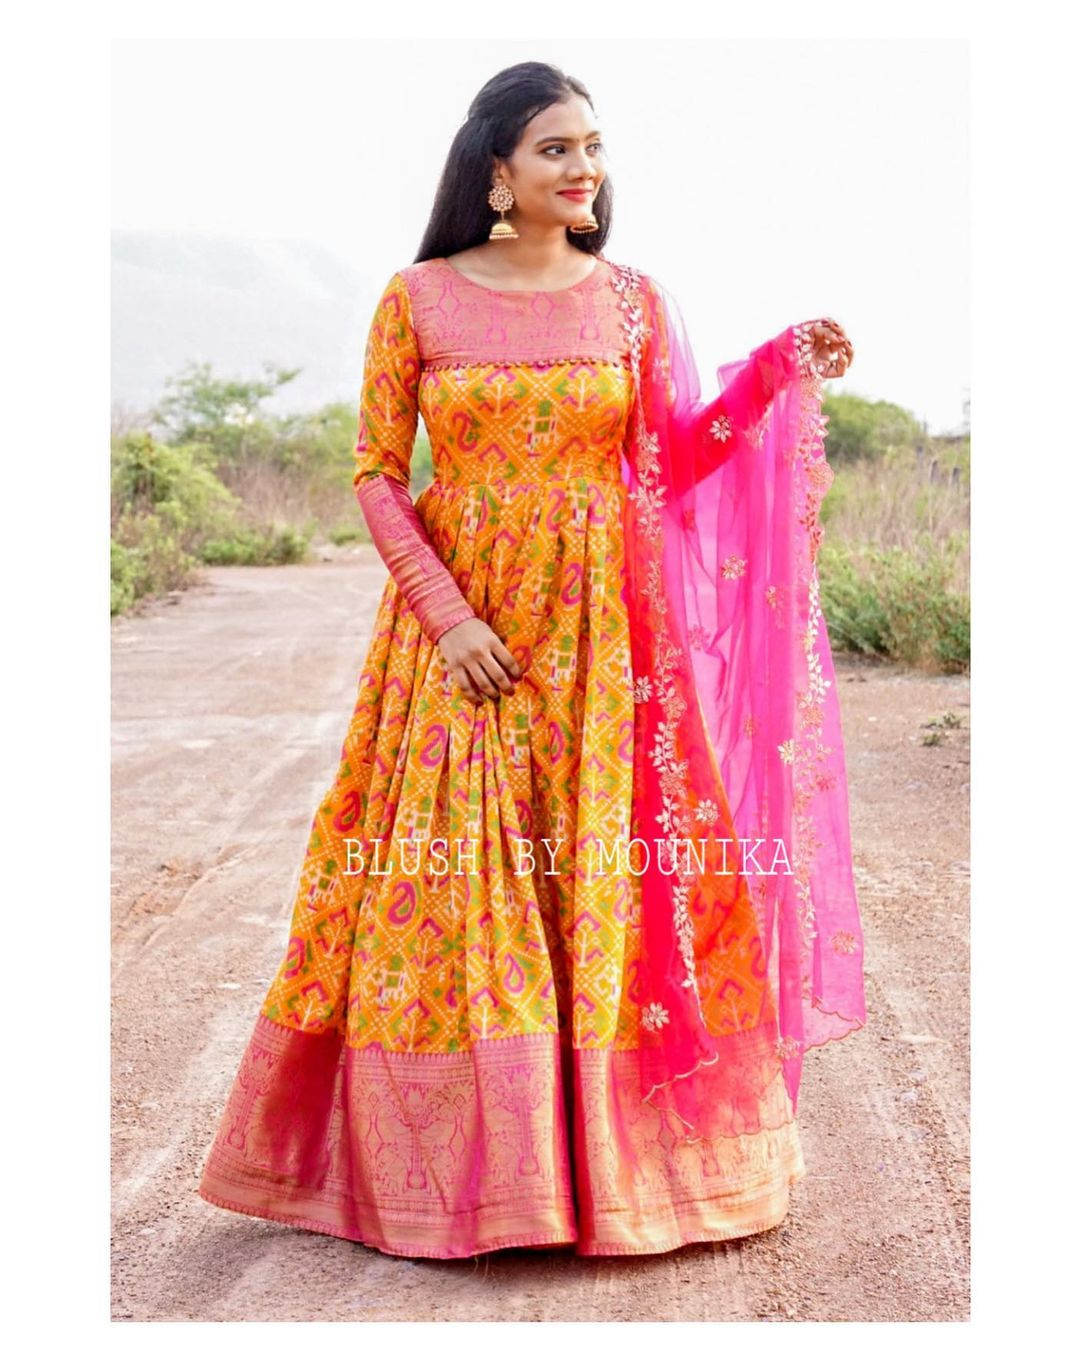 Yellow Soft Silk Price : ₹6980/- Yellow soft silk dress paired with a net cut-work dupatta. Can Can attached to the flare and Finished with double lining.  2021-05-24